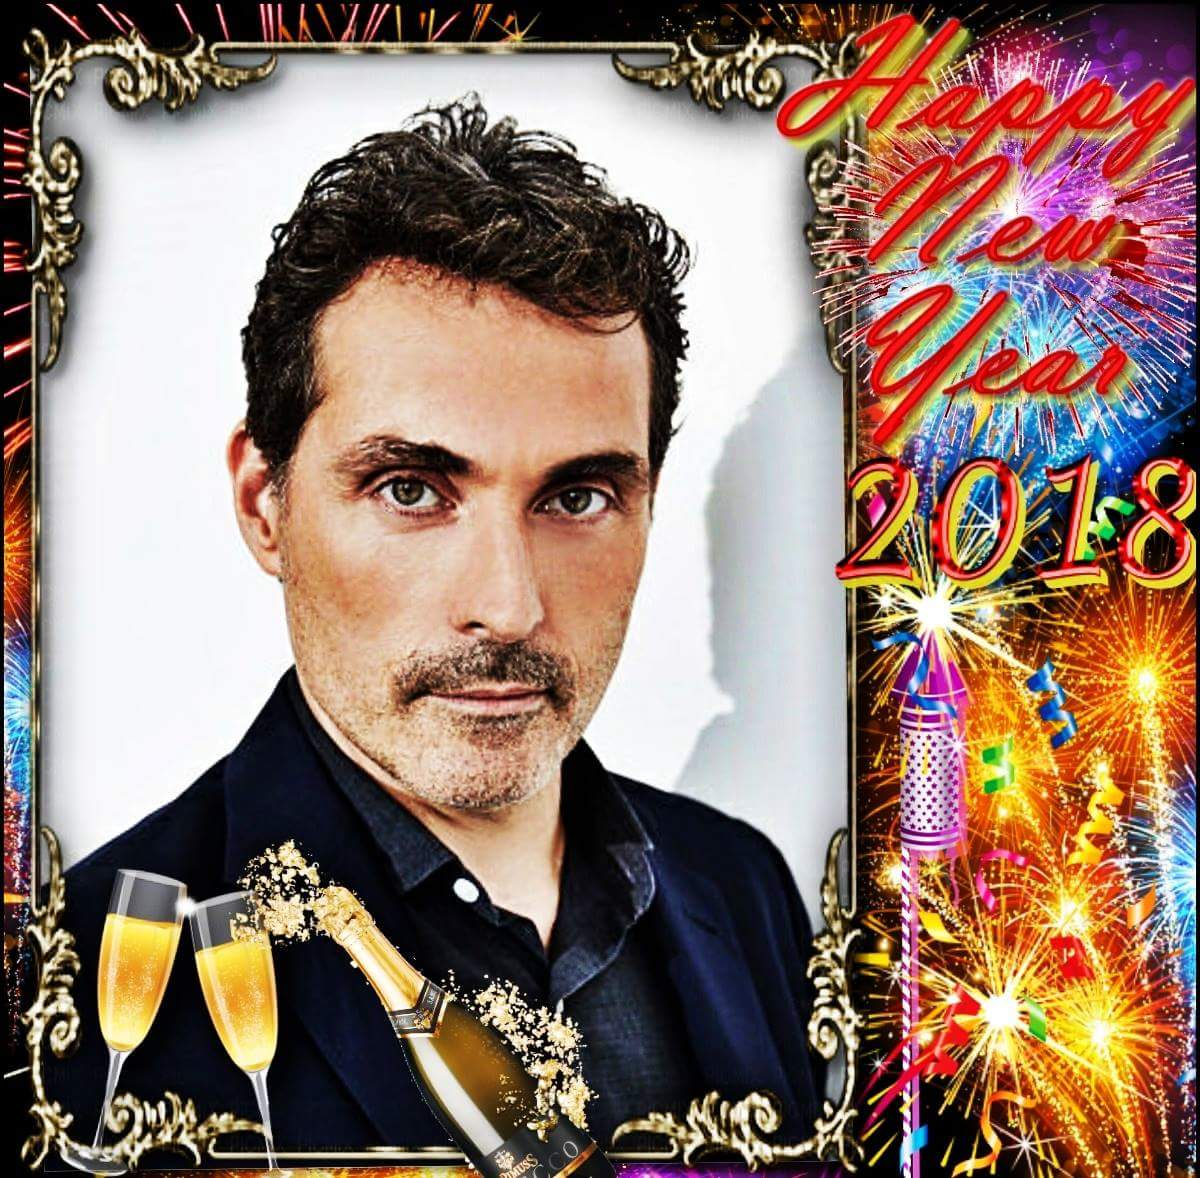 Hope these good wishes help you dear #RufusSewell #Rooftoppers  to celebrate an exciting and magical New Year. Wishing you a very Happy New Year. pic.twitter.com/EGJfeXixPy